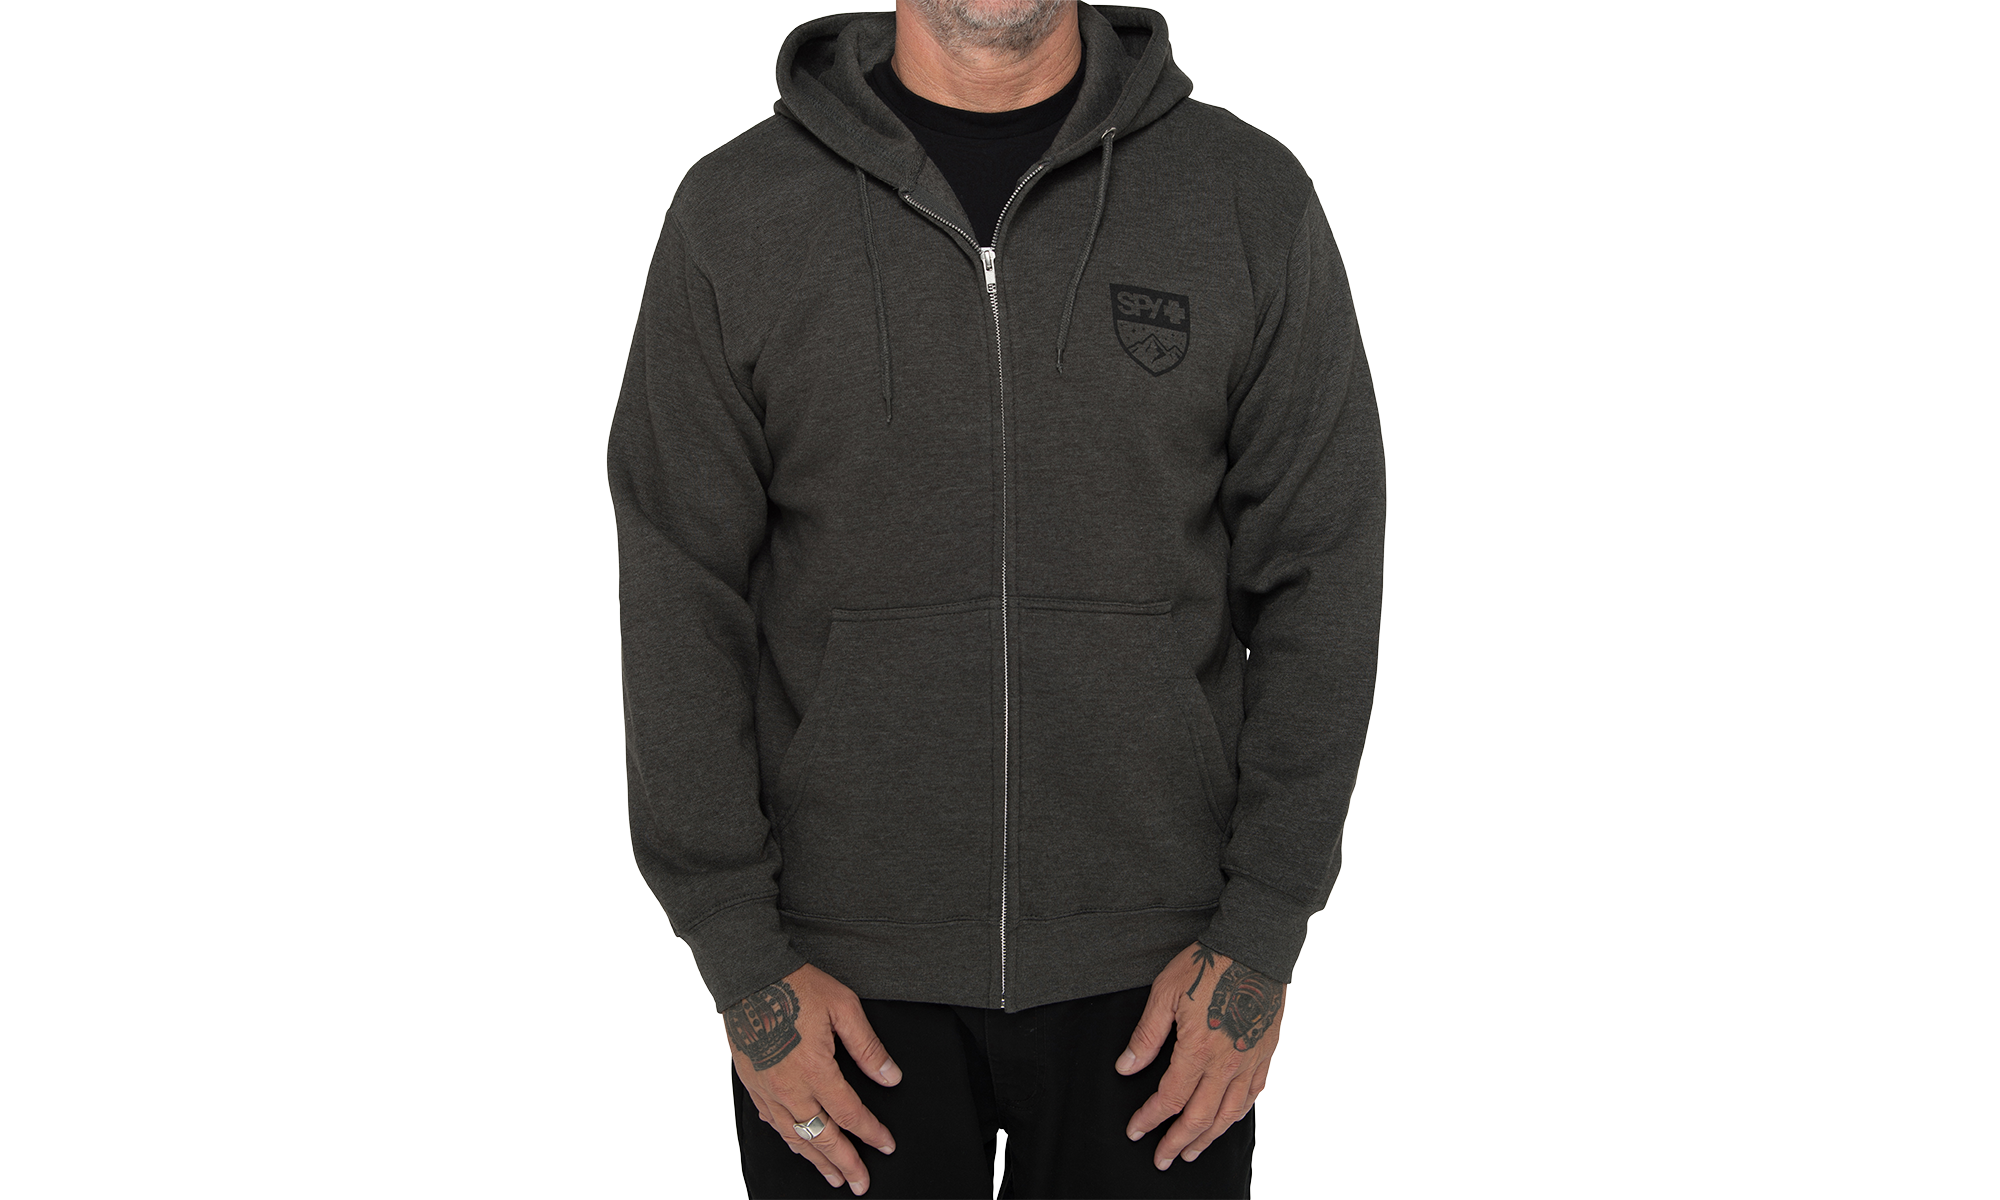 Alpine Badge Zip-Up Sweatshirt, , hi-res